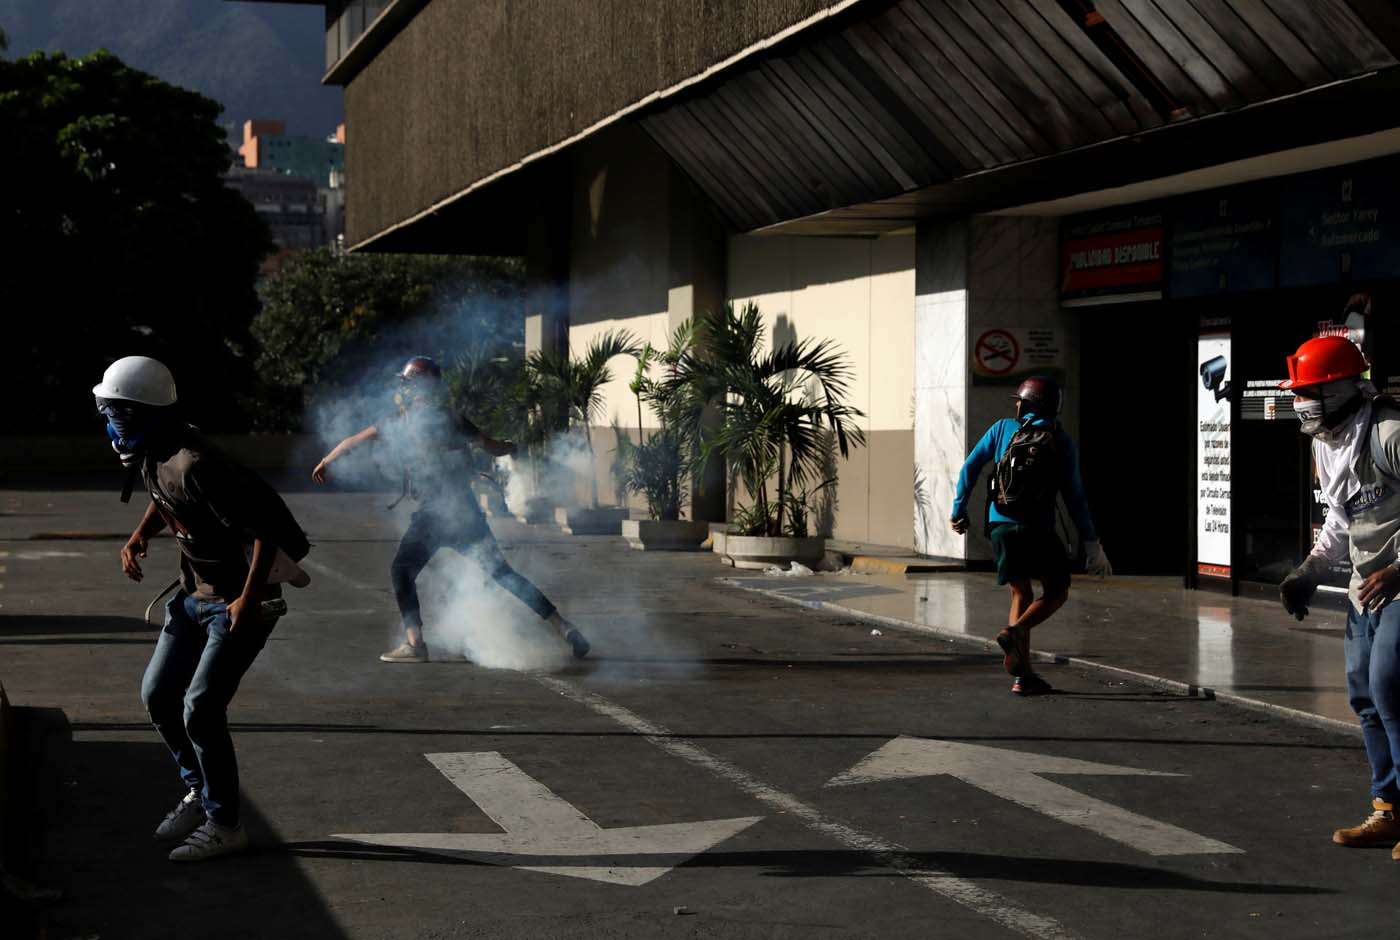 A demonstrator throws back a tear gas canister during clashes with security forces at a rally against Venezuelan President Nicolas Maduro's government in Caracas, Venezuela, July 6, 2017. REUTERS/Andres Martinez Casares